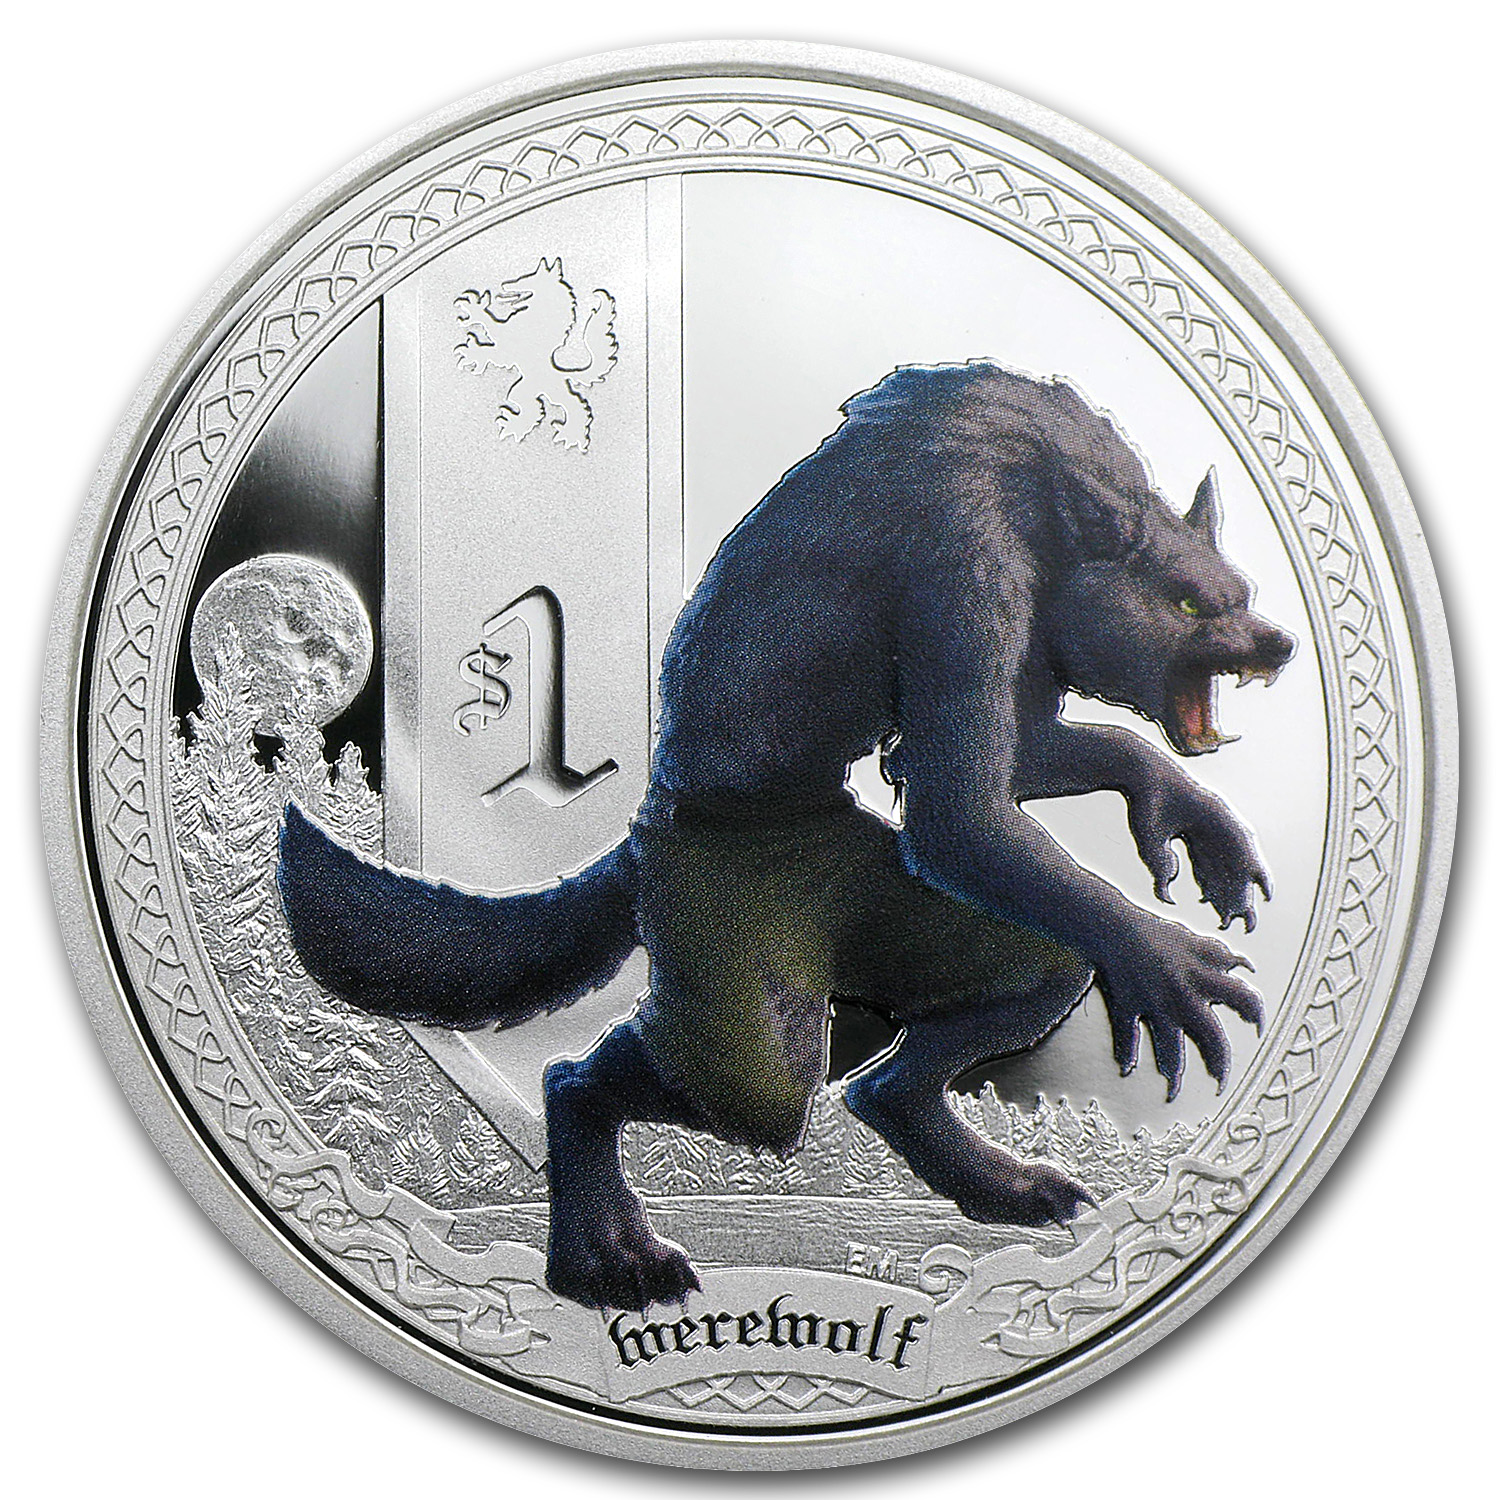 2013 Tuvalu 1 oz Silver Mythical Creatures Werewolf Proof